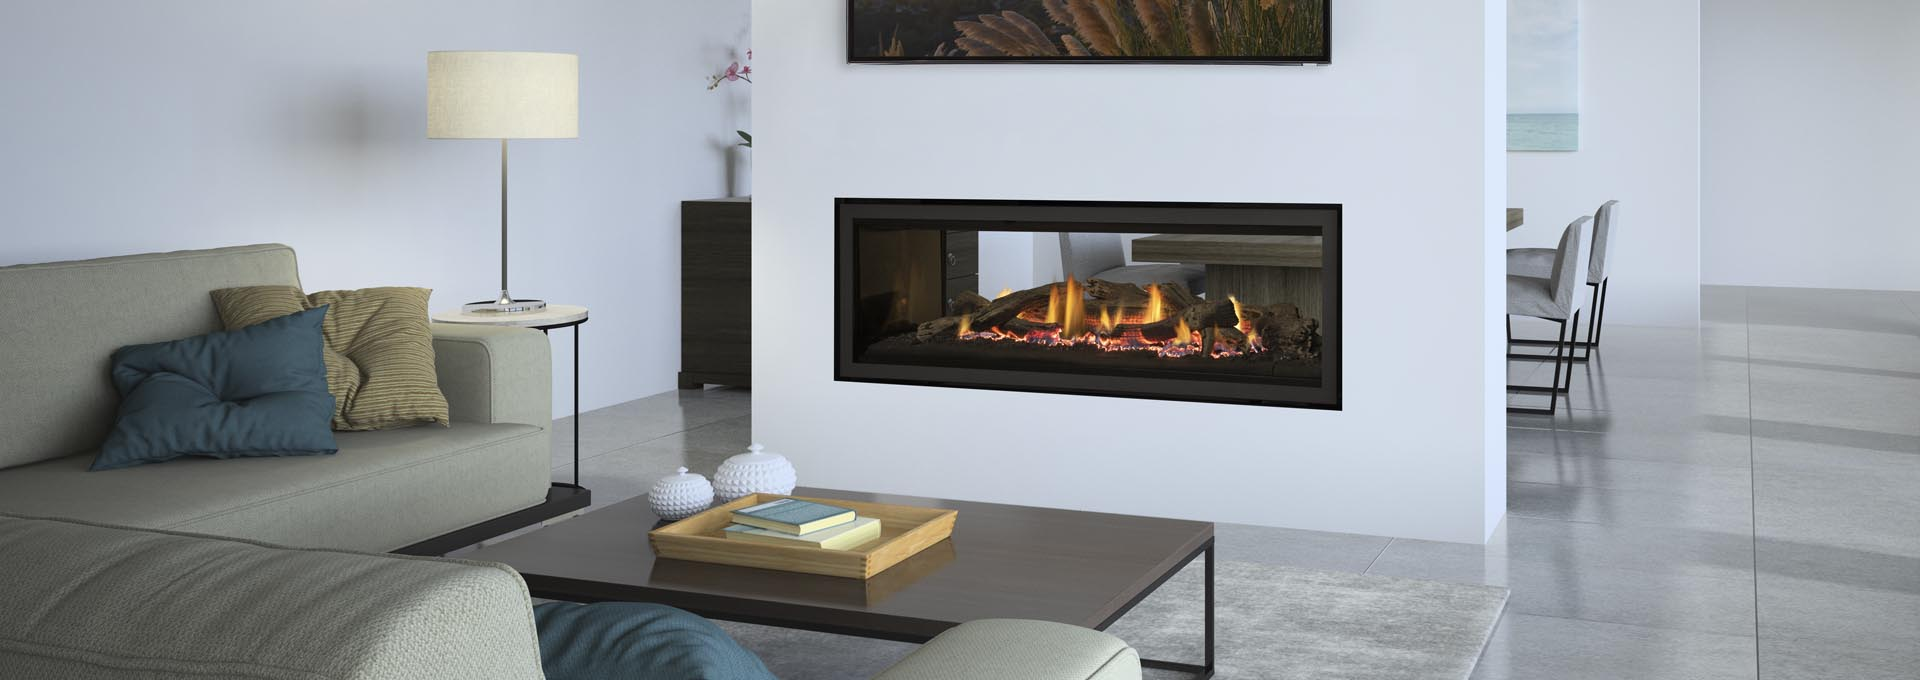 Propane Gas fireplace system set up